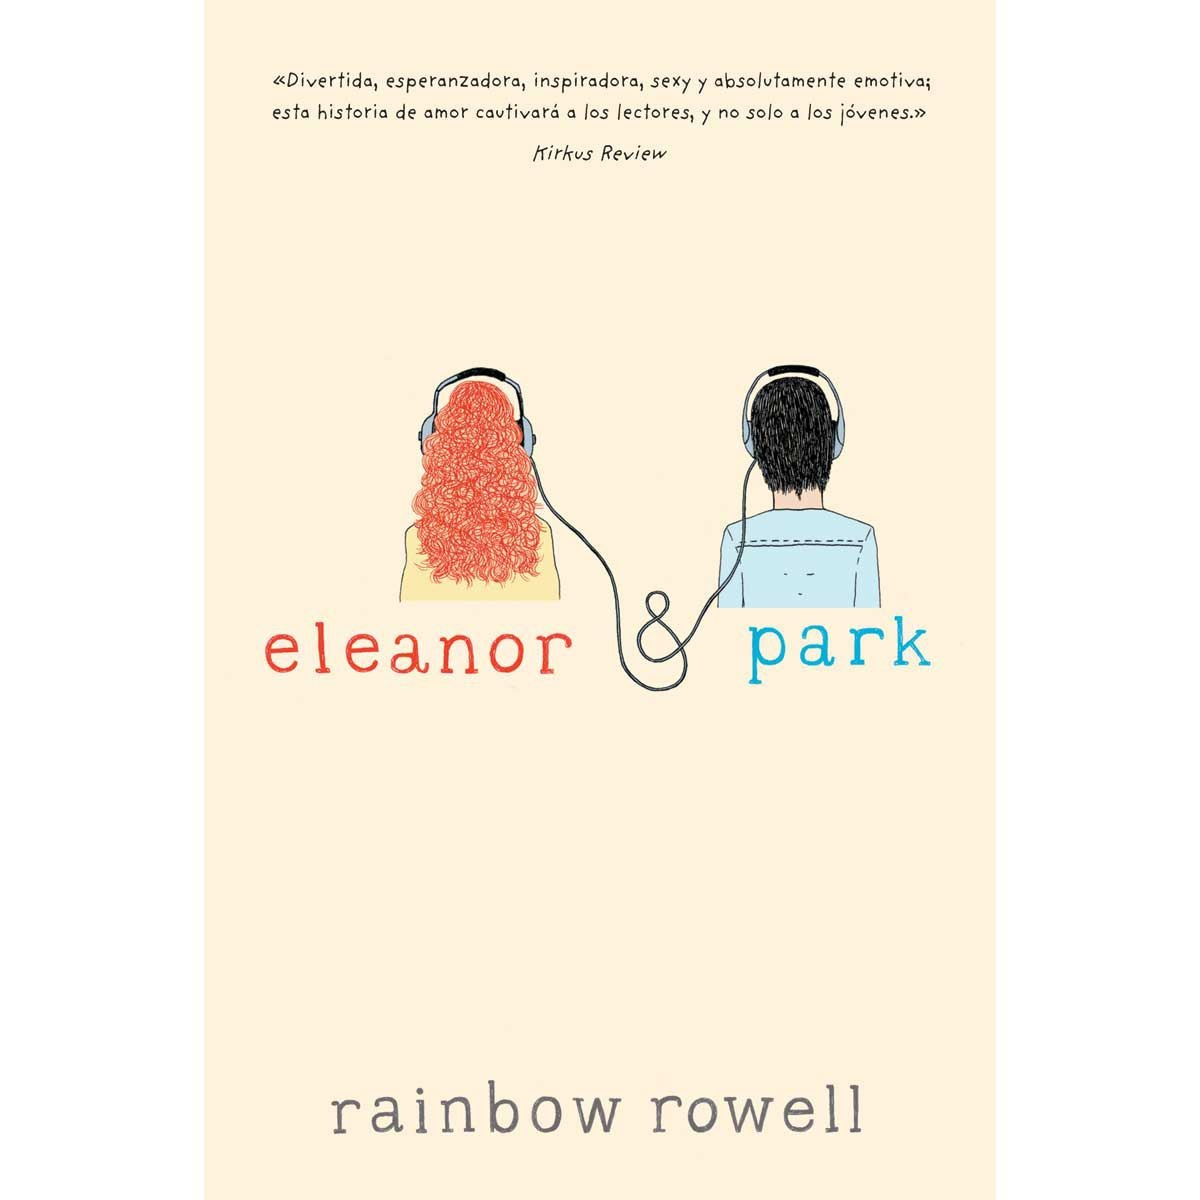 Eleanor & park Libro - Sanborns